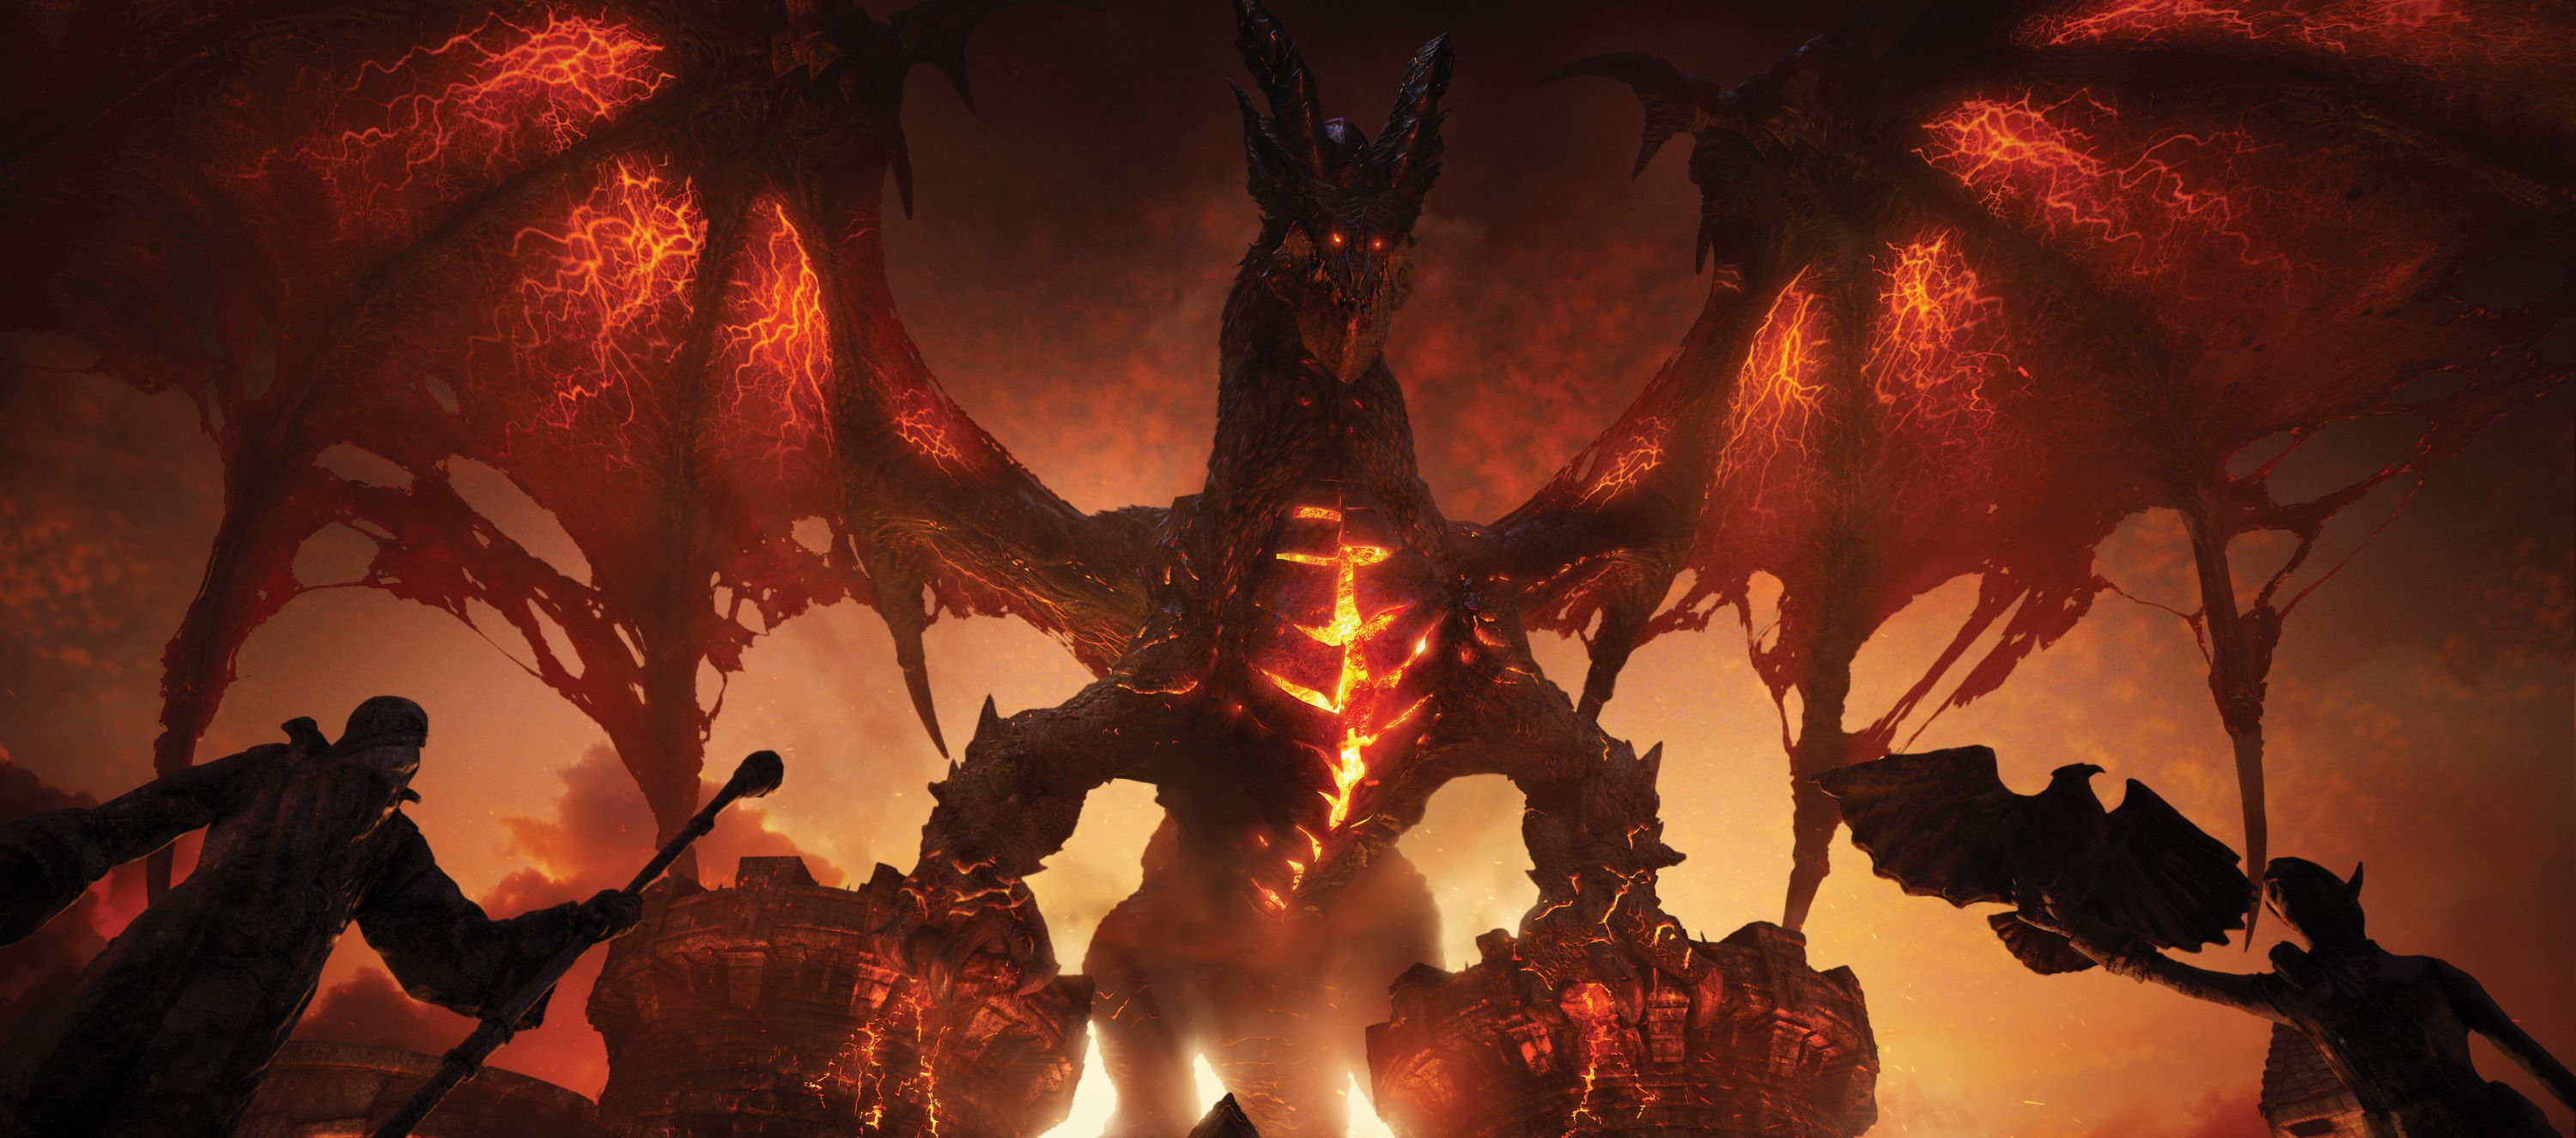 Wallpaper World Of Warcraft Cataclysm Wow Deathwing